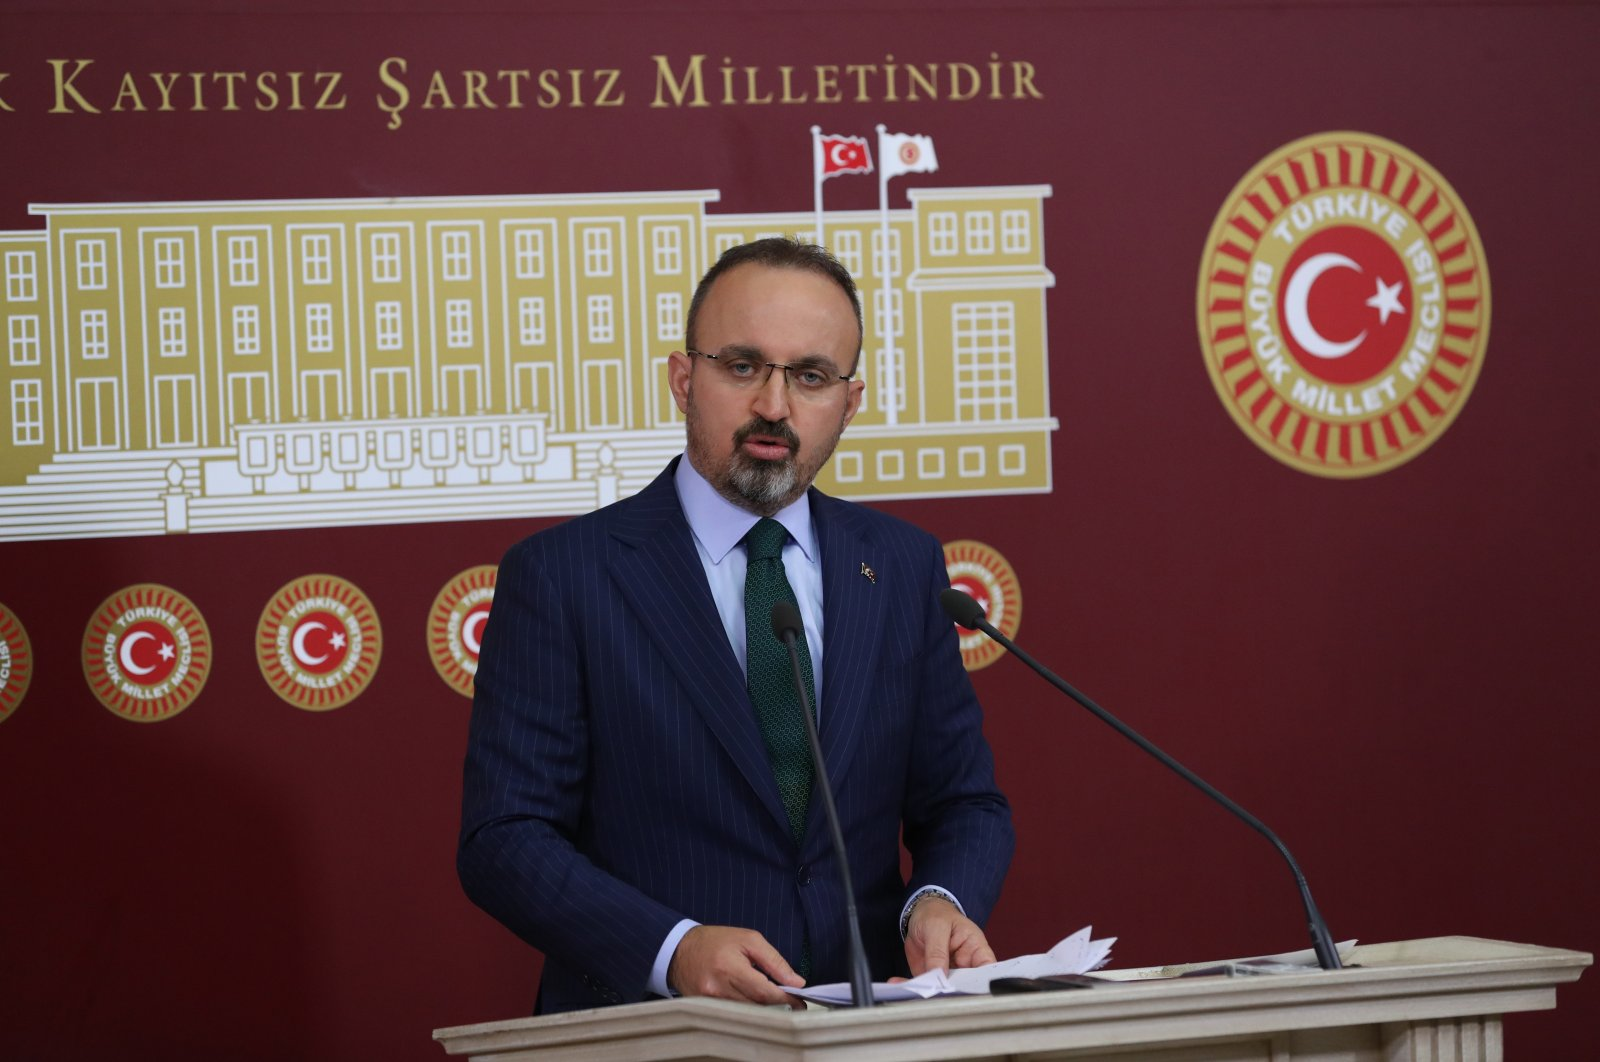 Justice and Development Party (AK Party) Group Deputy Chairperson Bülent Turan speaks to reporters at a news conference at the Turkish Parliament in Ankara, Turkey, April 20, 2021. (Sabah File Photo)